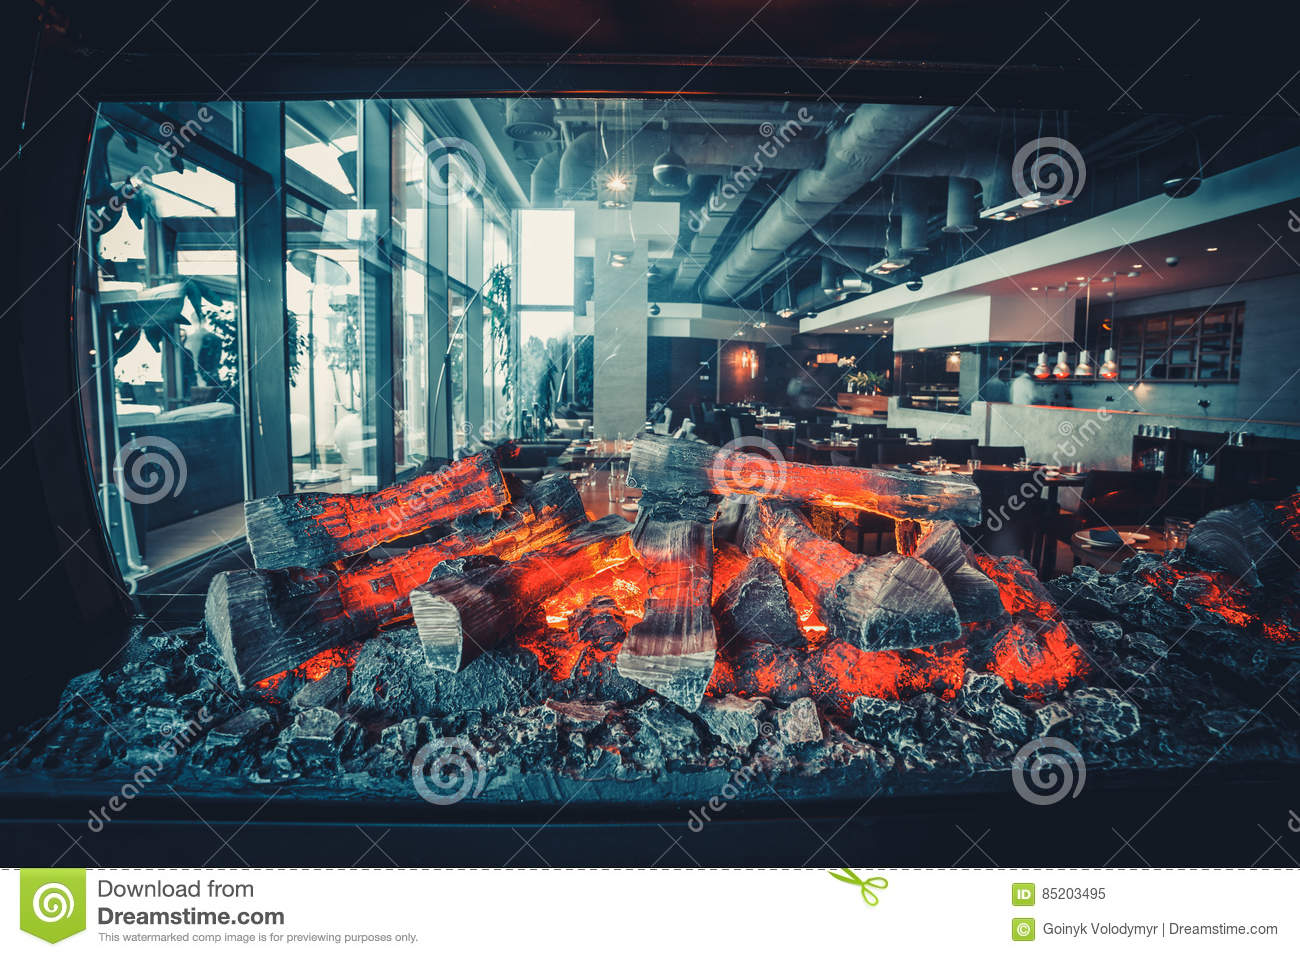 Modern Restaurant With Open Kitchen Stock Image - Image of equipment ...